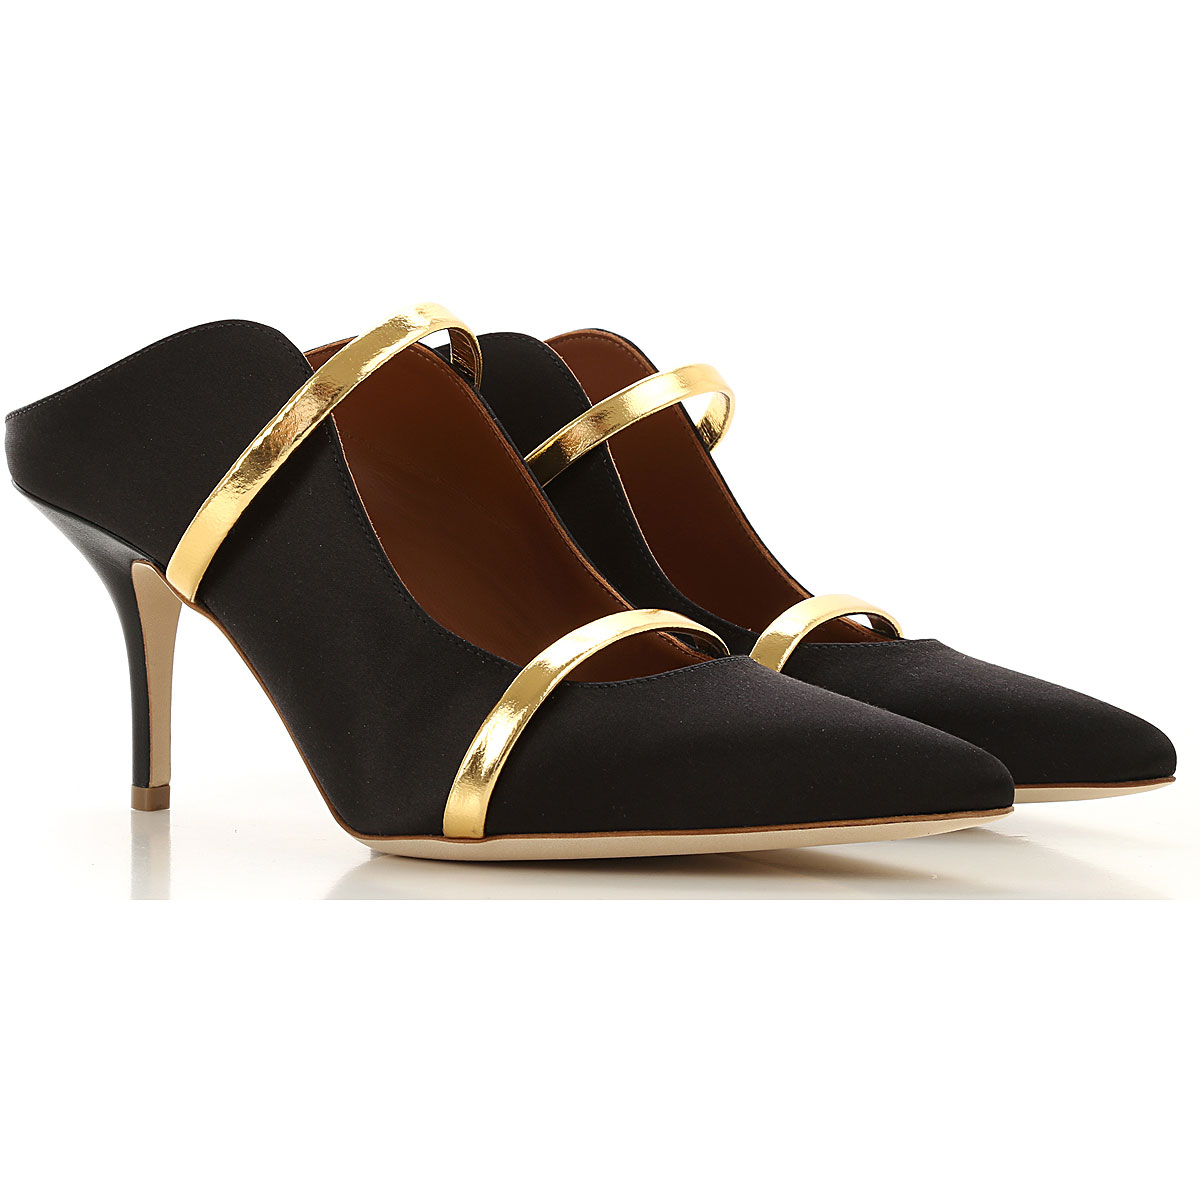 Malone Souliers Pumps & High Heels for Women On Sale, Black, satin, 2019, 6 7